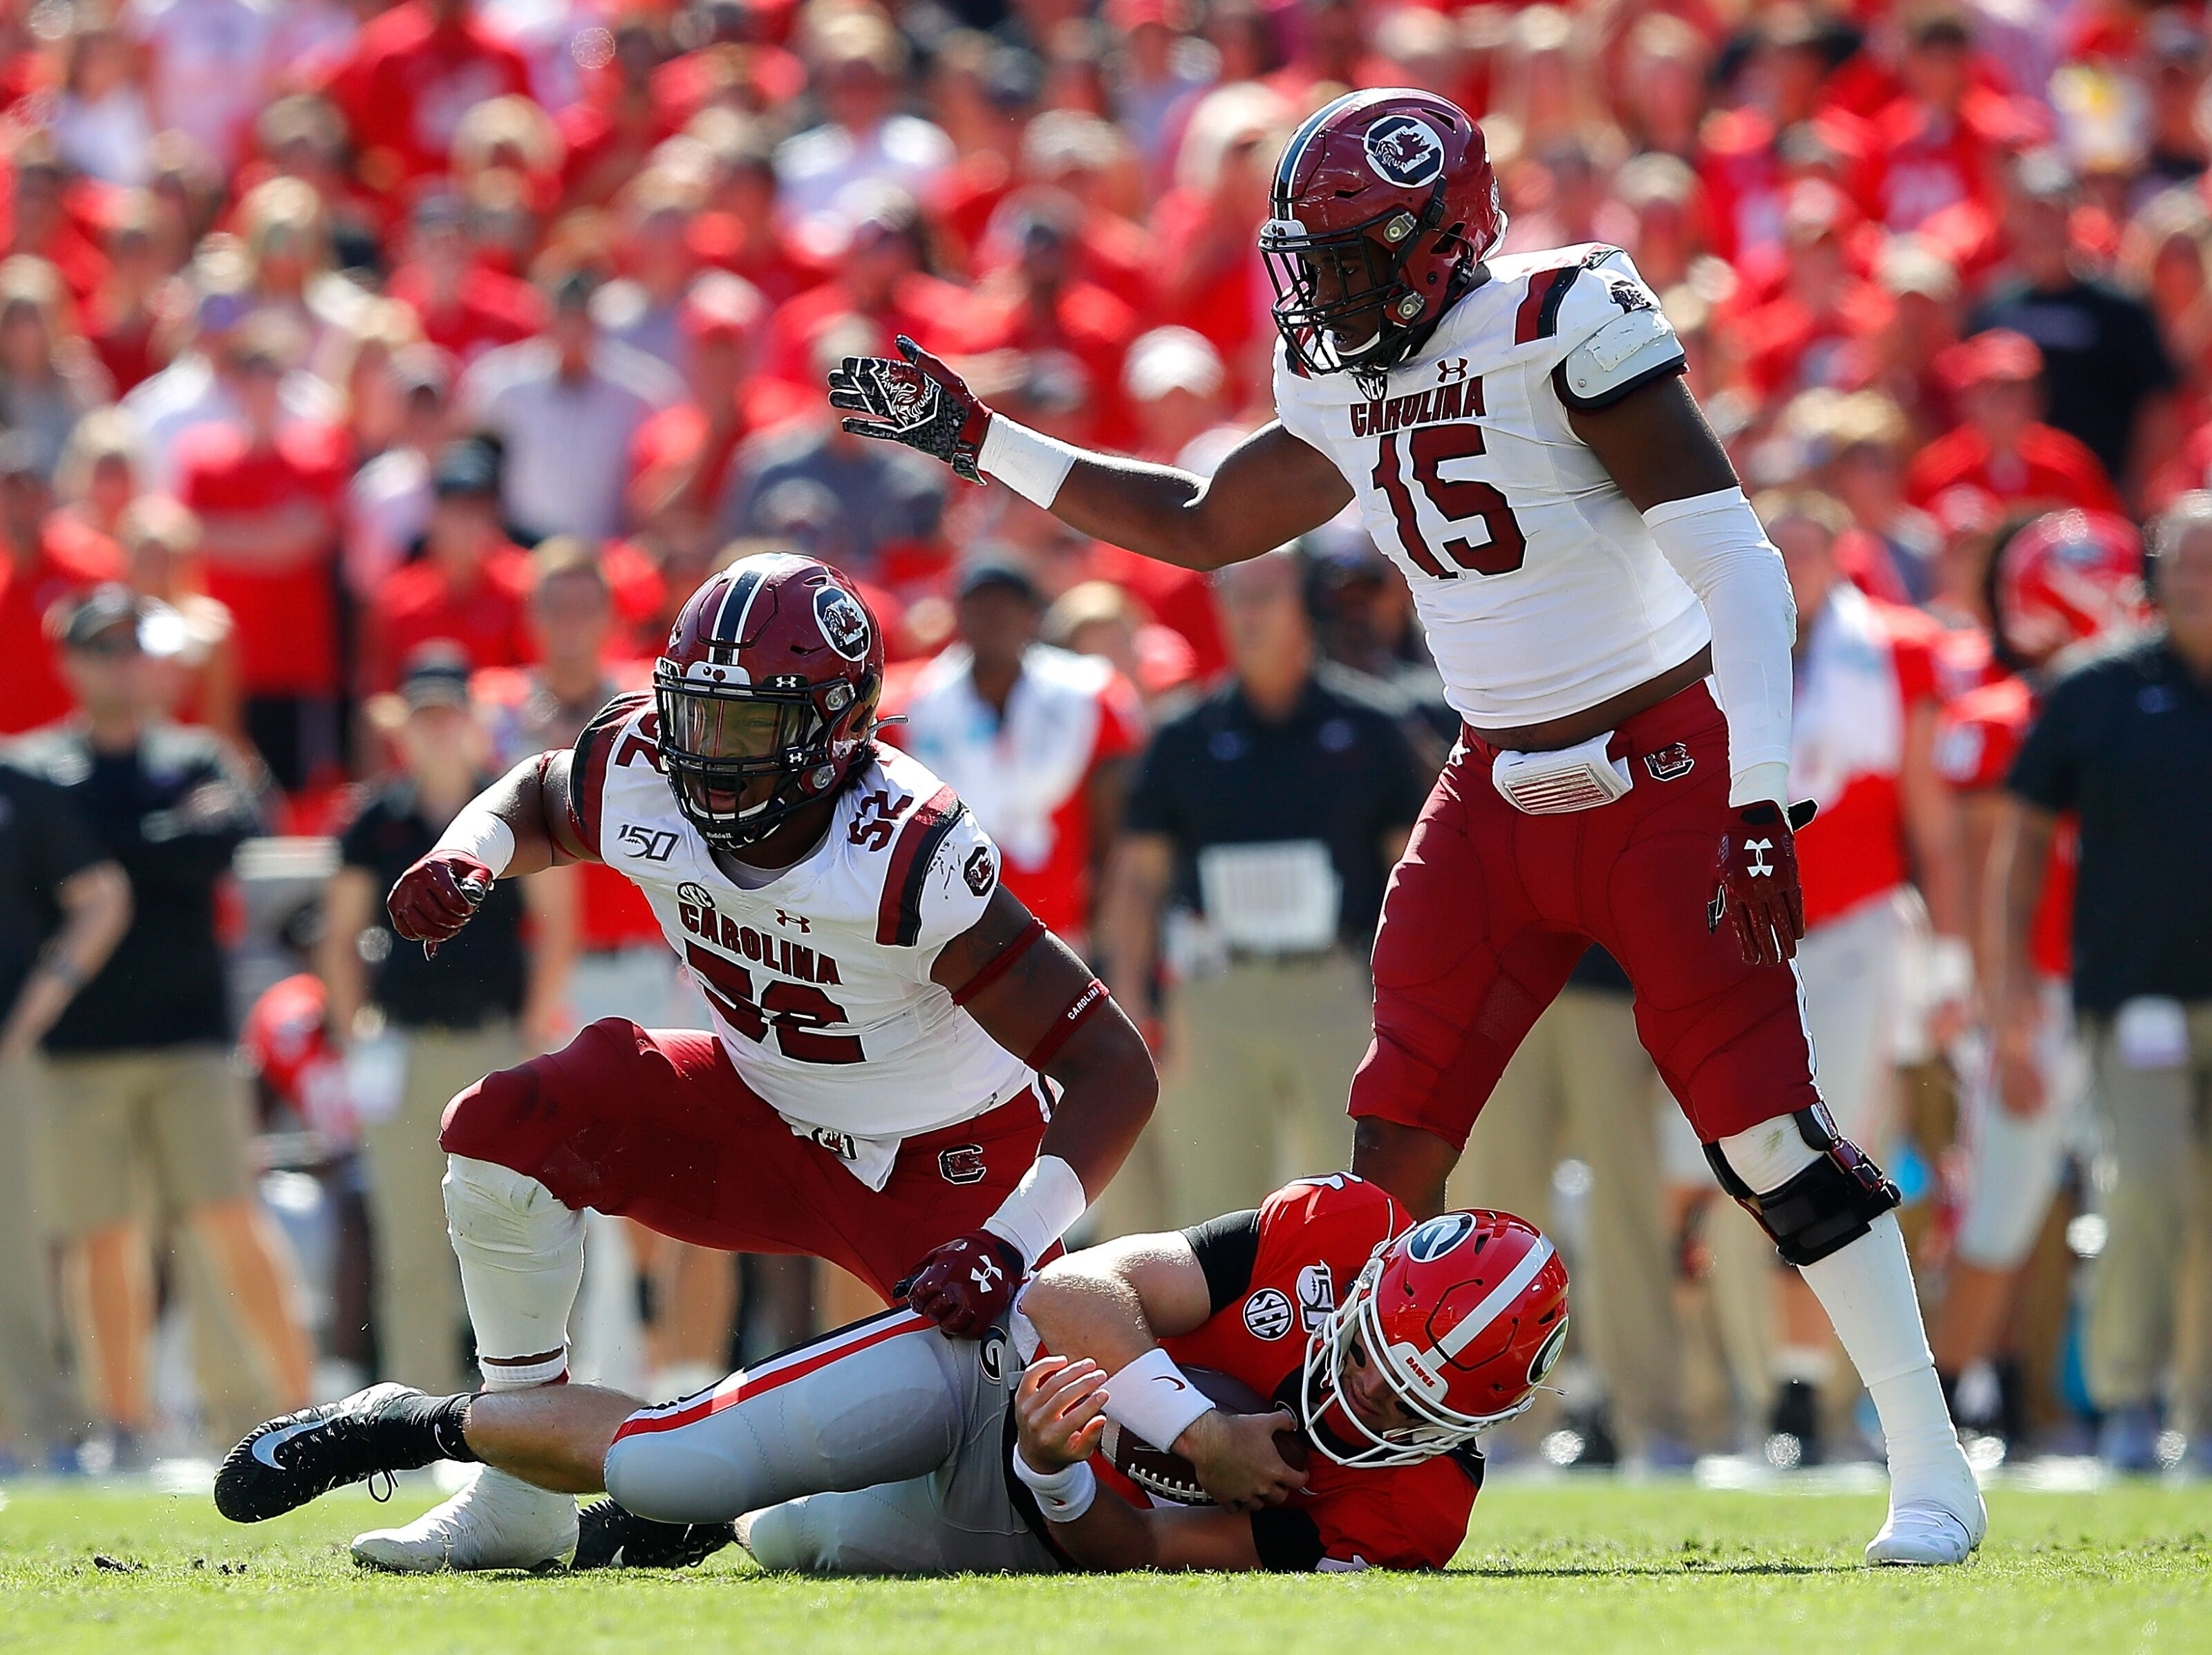 Anatomy of an upset: 3 cardinal sins Georgia committed in loss to South Carolina